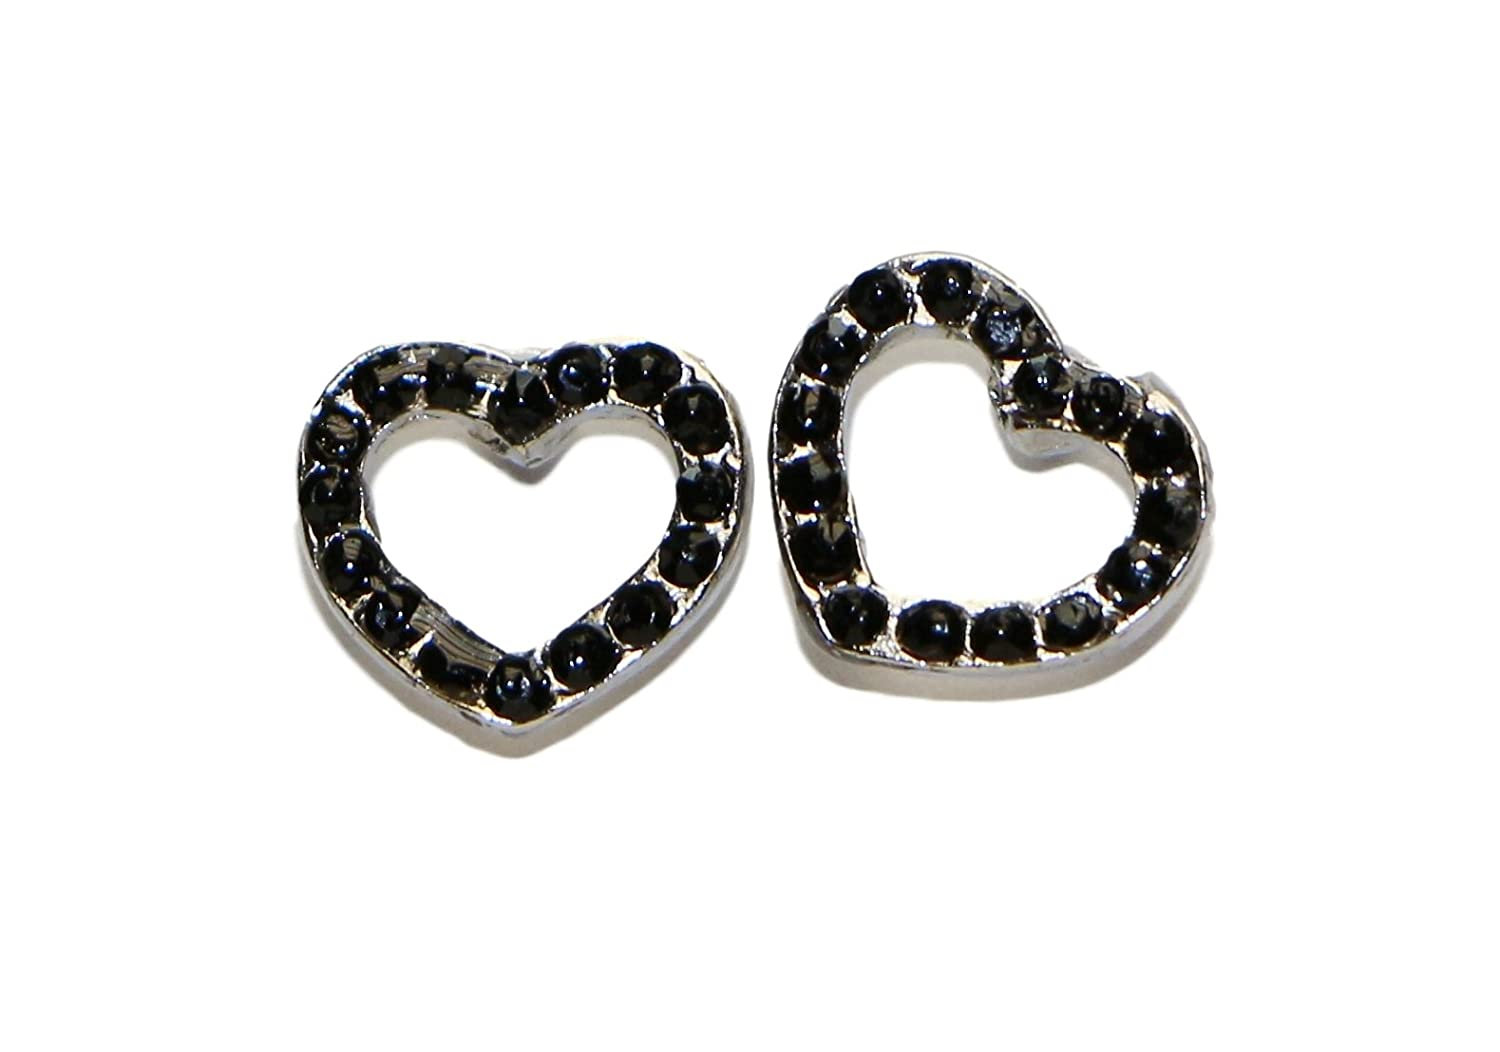 Surgical Stainless Steel Studs Earrings Little Girl Women Heart Shape Cubic Zirconia Hypoallergenic Earrings